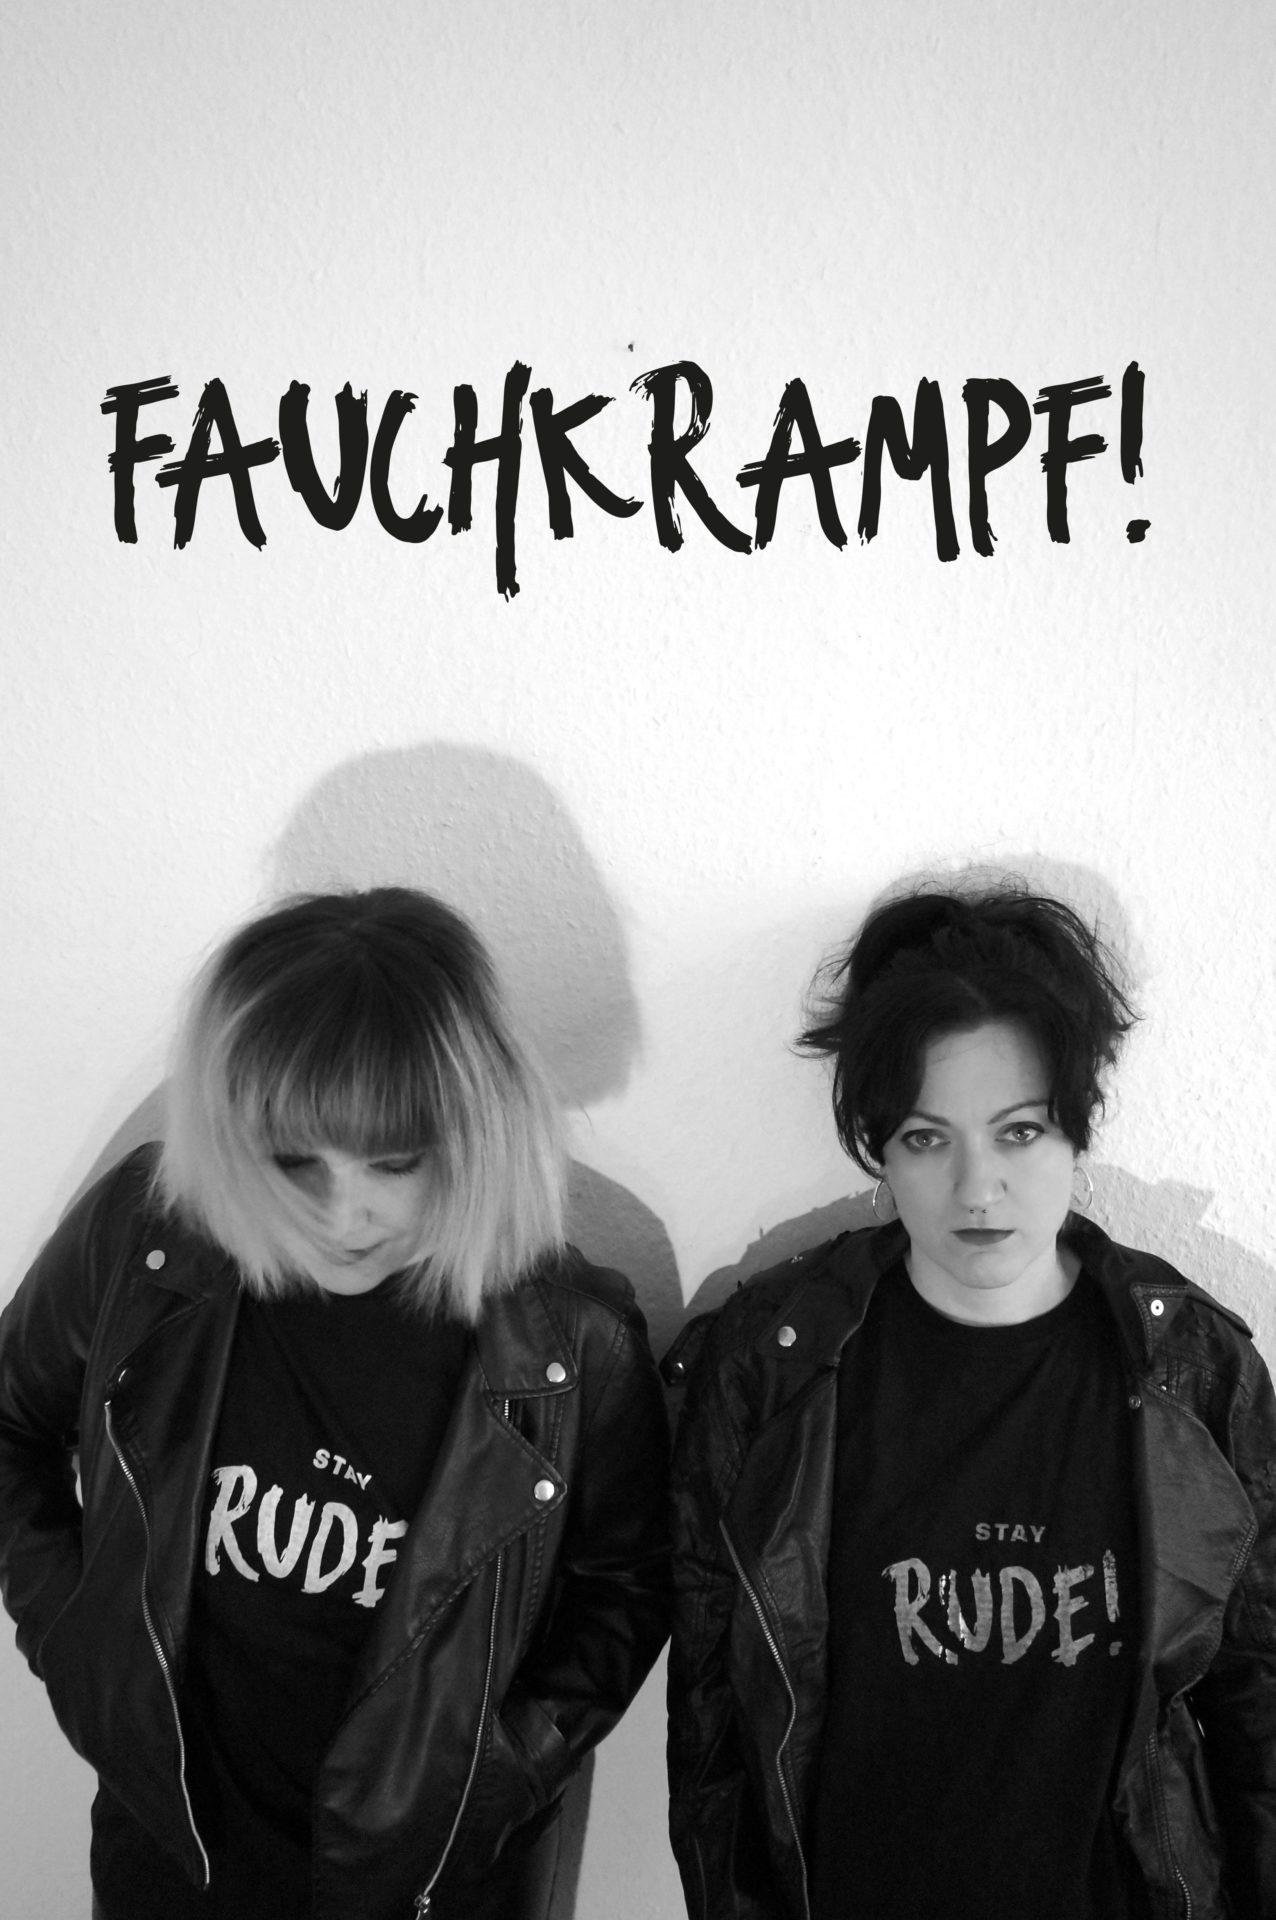 FAUCHKRAMPF! MUSIC AGENCY FOR ANGRY FEMINISTS – Ein Gespräch 1